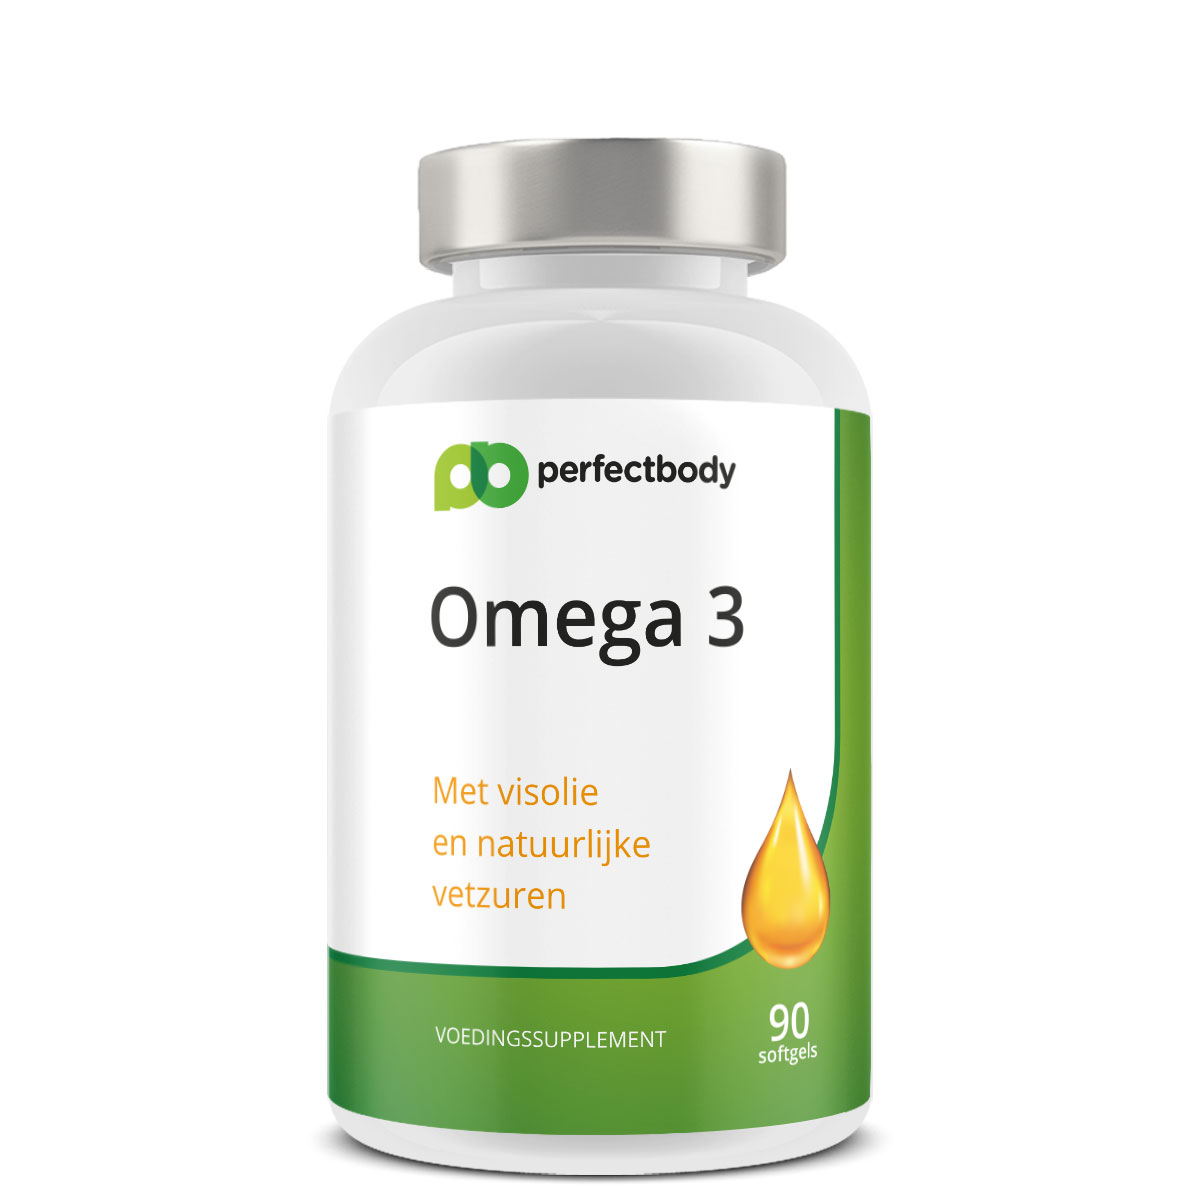 Perfectbody Omega 3 Capsules (1000 Mg) - 90 Softgels